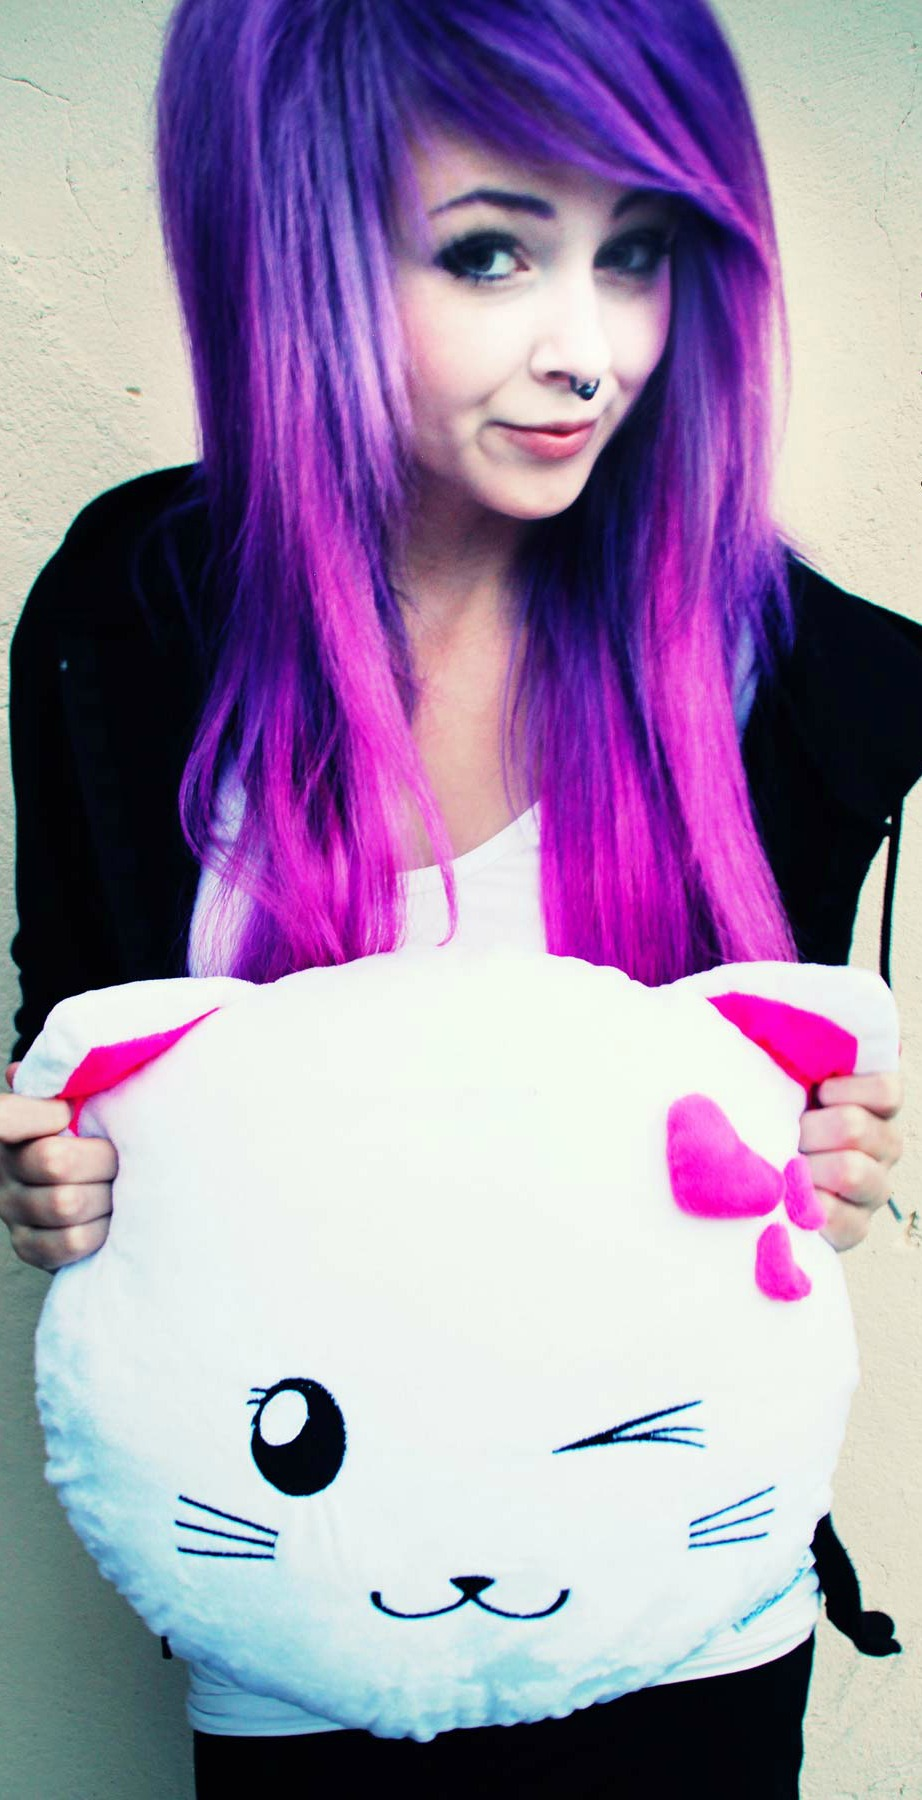 image sarah sorceress cat pillow kitty kissen scene girl purple lila pink hair haare. Black Bedroom Furniture Sets. Home Design Ideas